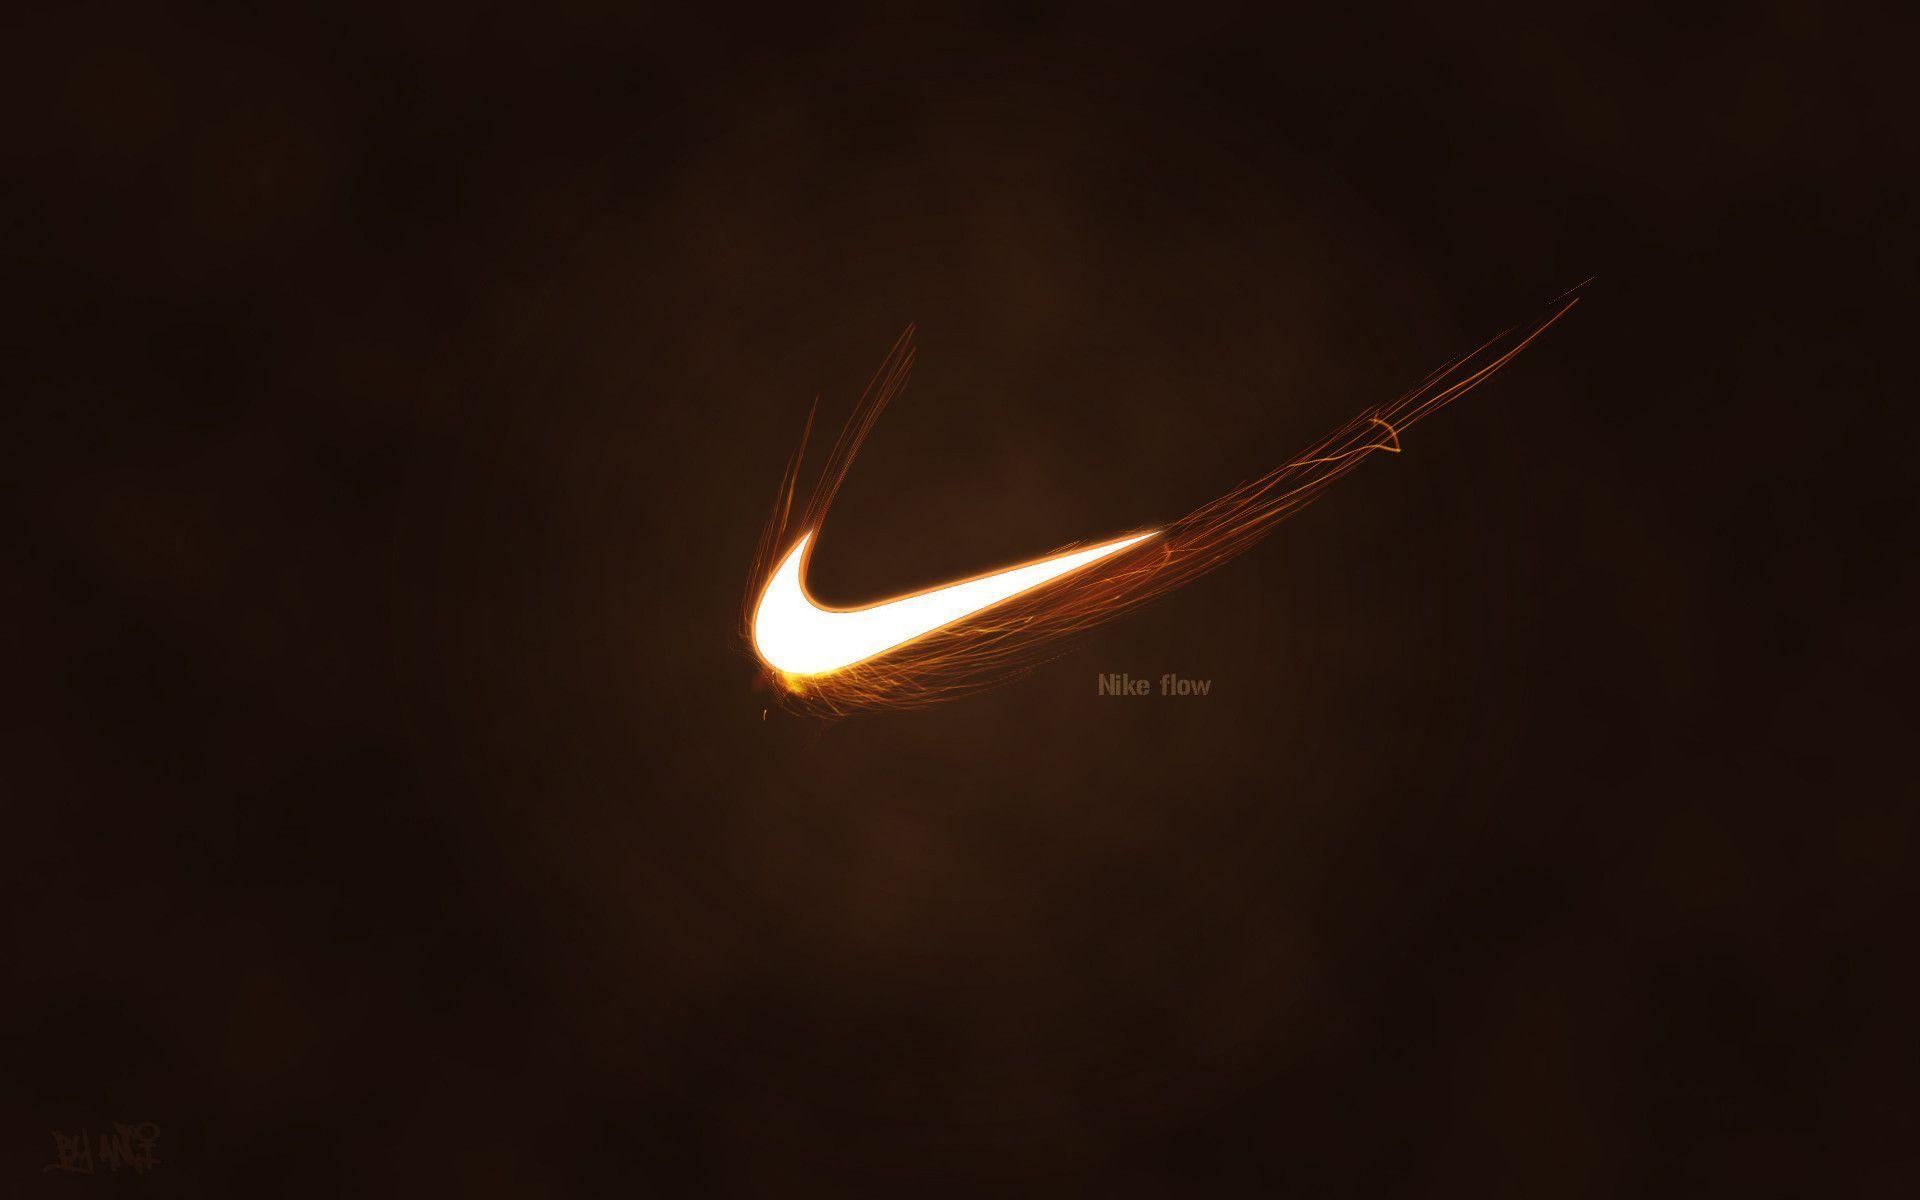 Cool Nike Backgrounds 1920x1200